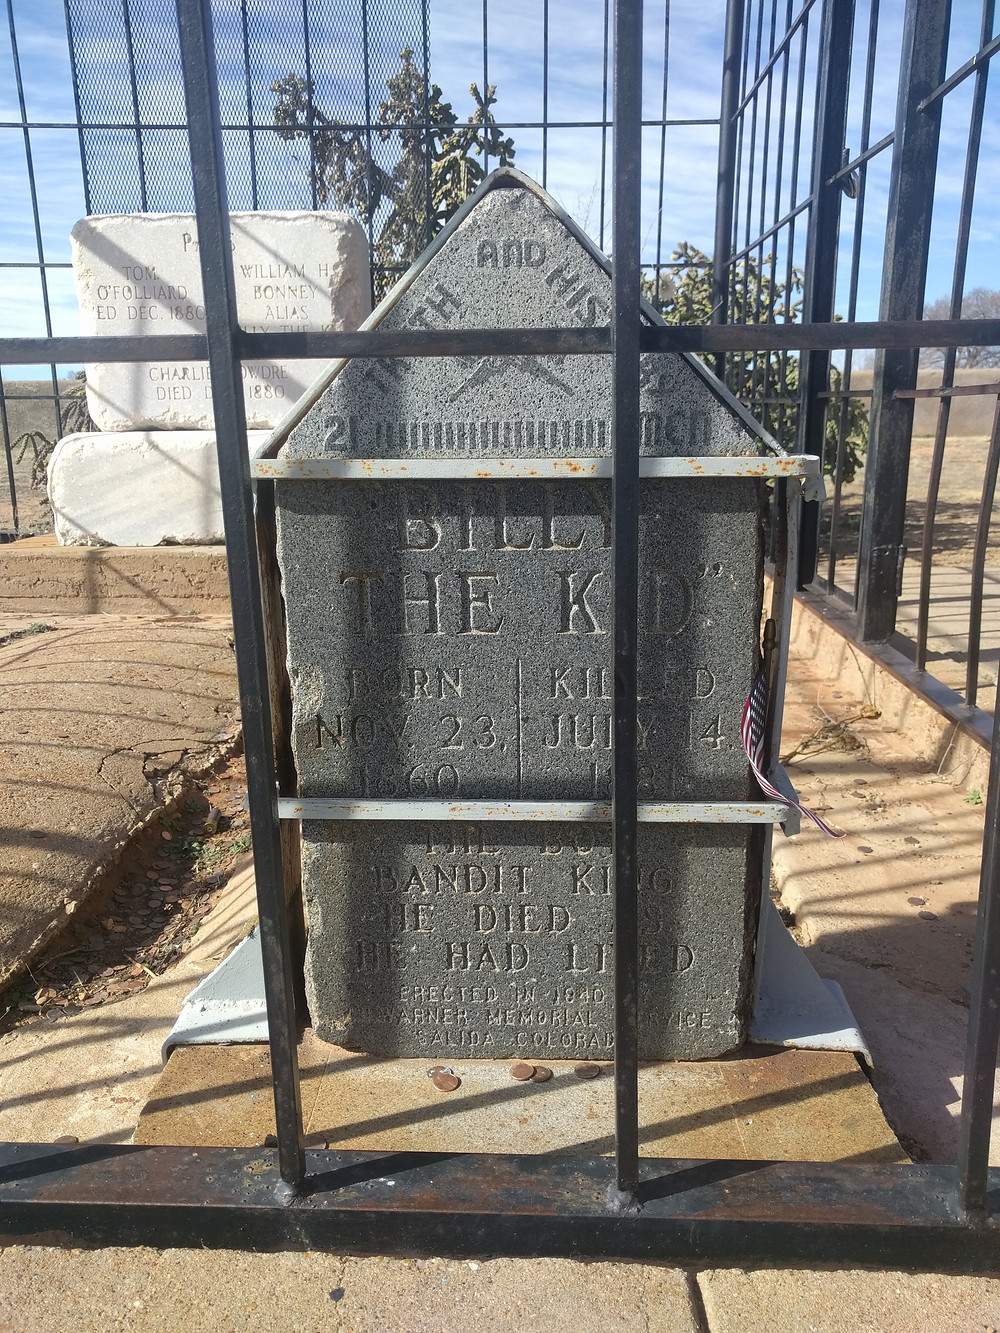 Billy the Kid's tombstone